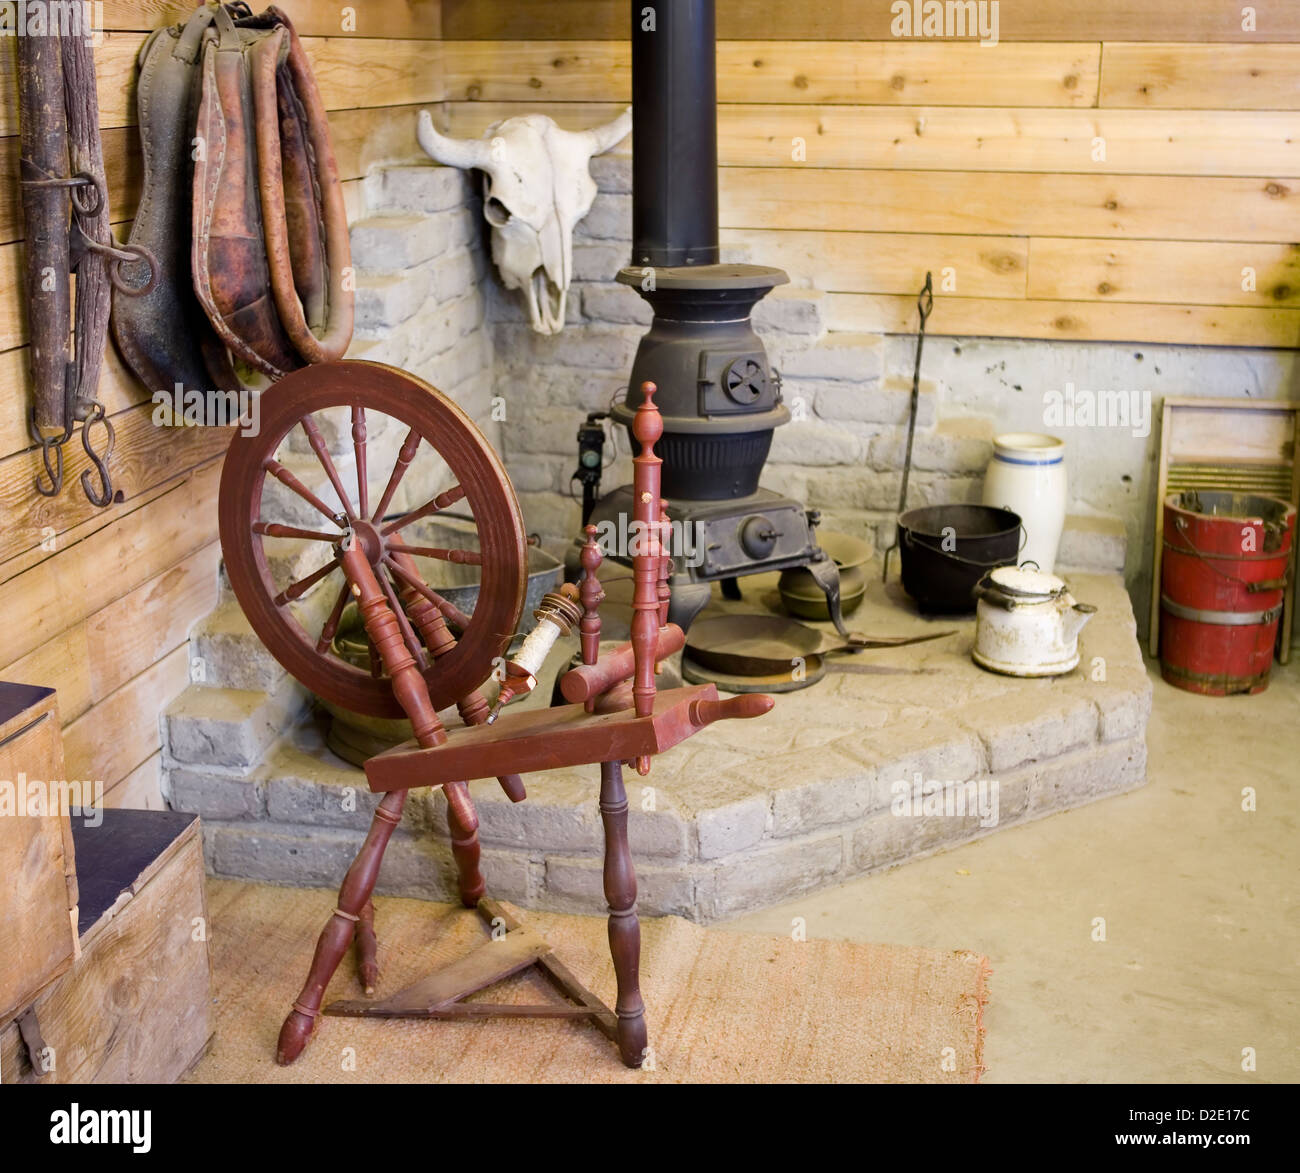 Spinning wheel, potbelly stove and other antiques - Stock Image